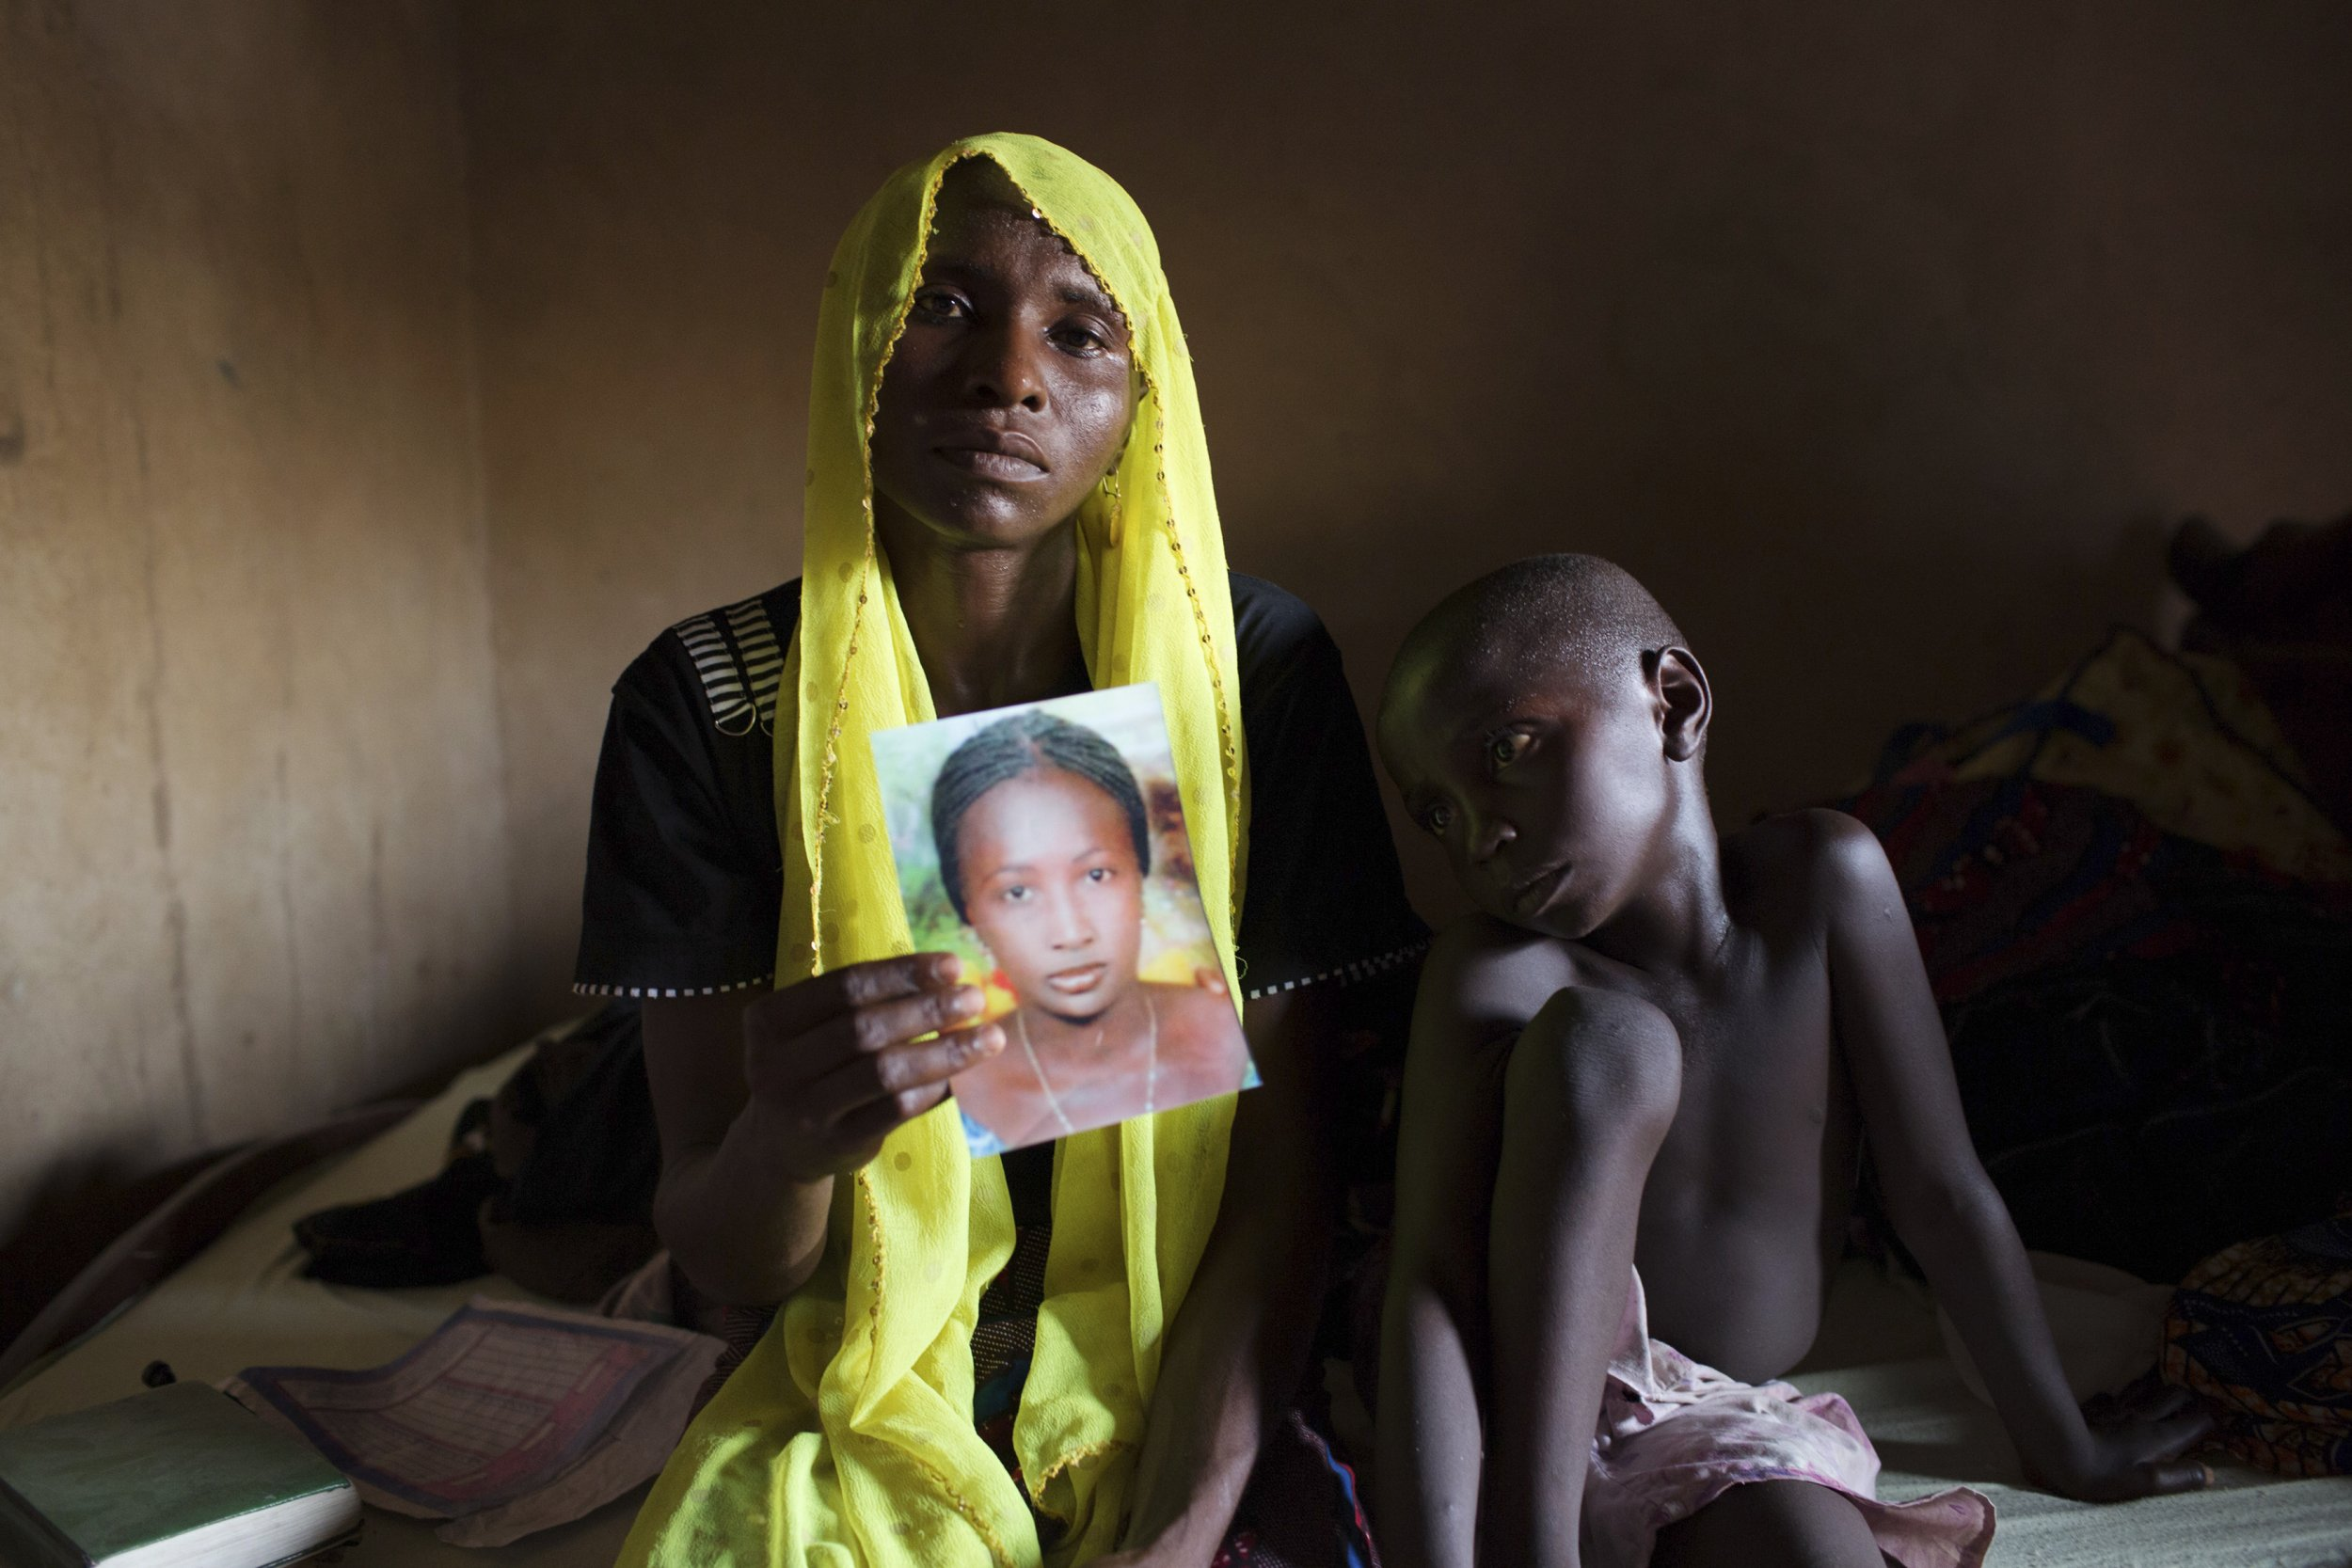 Mother of Boko Haram abductee